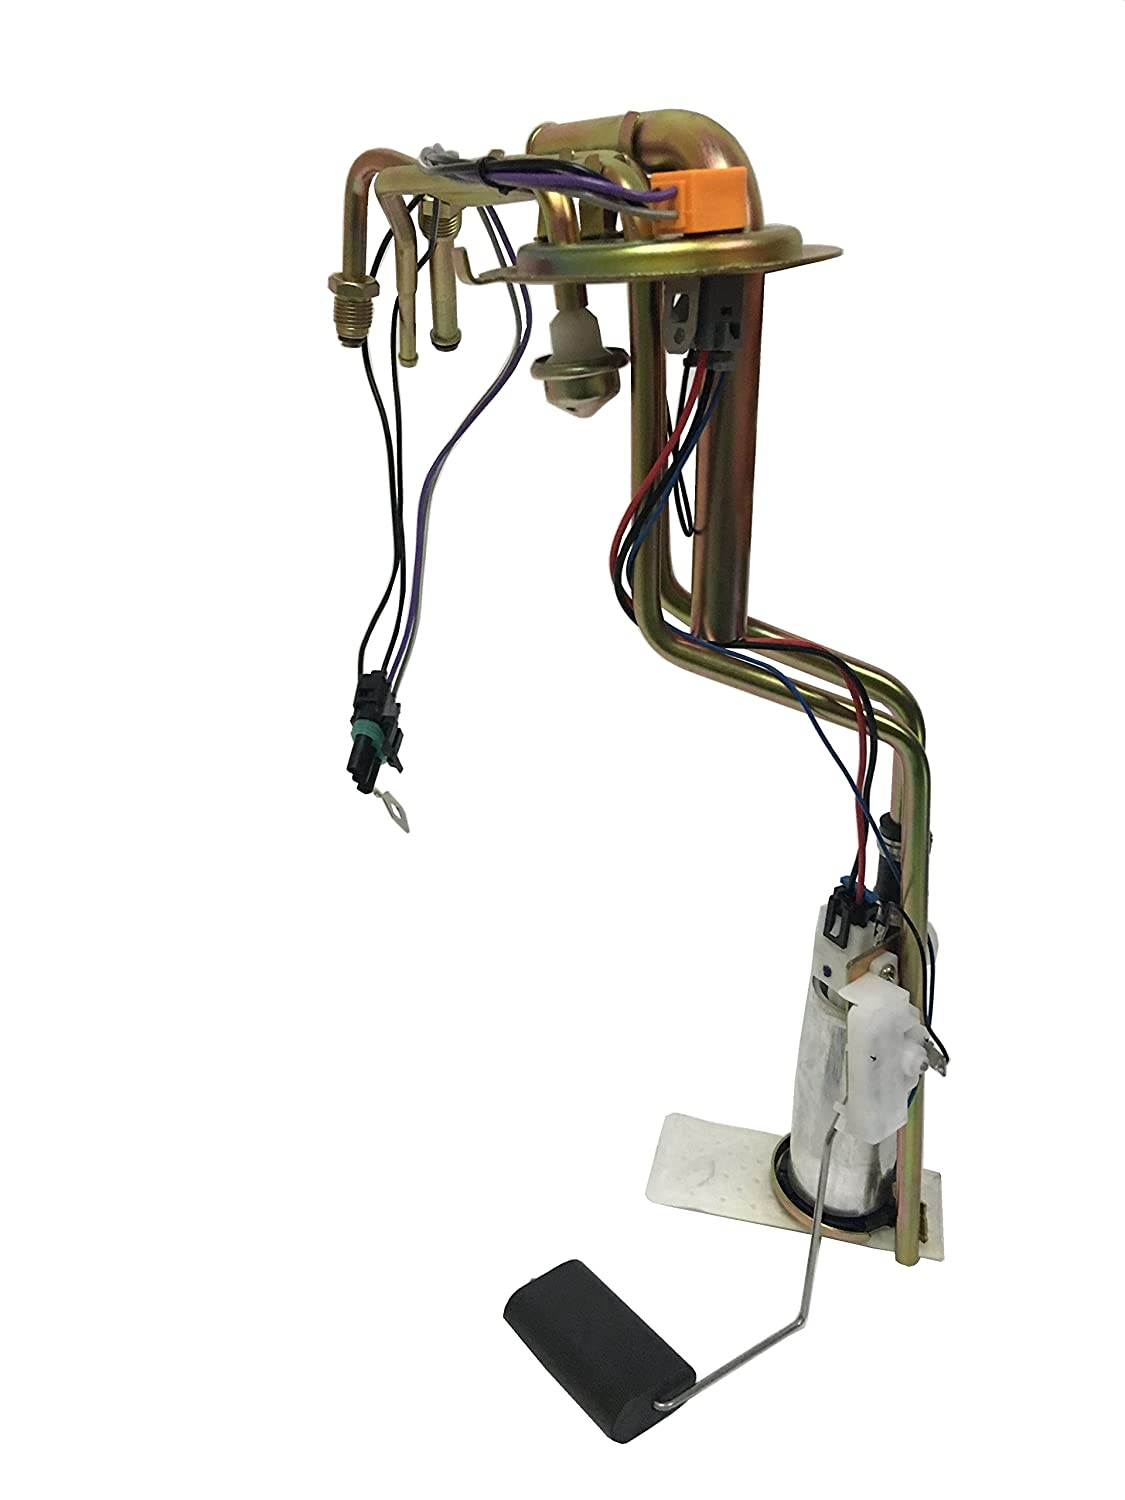 Topscope Fp3621s Fuel Pump Module Assembly E3621s Fits 93 Mustang Filter Location 1988 1989 1900 1991 1992 1993 1994 1995 Chevrolet C1500 C2500 C3500 K1500 K2500 K3500